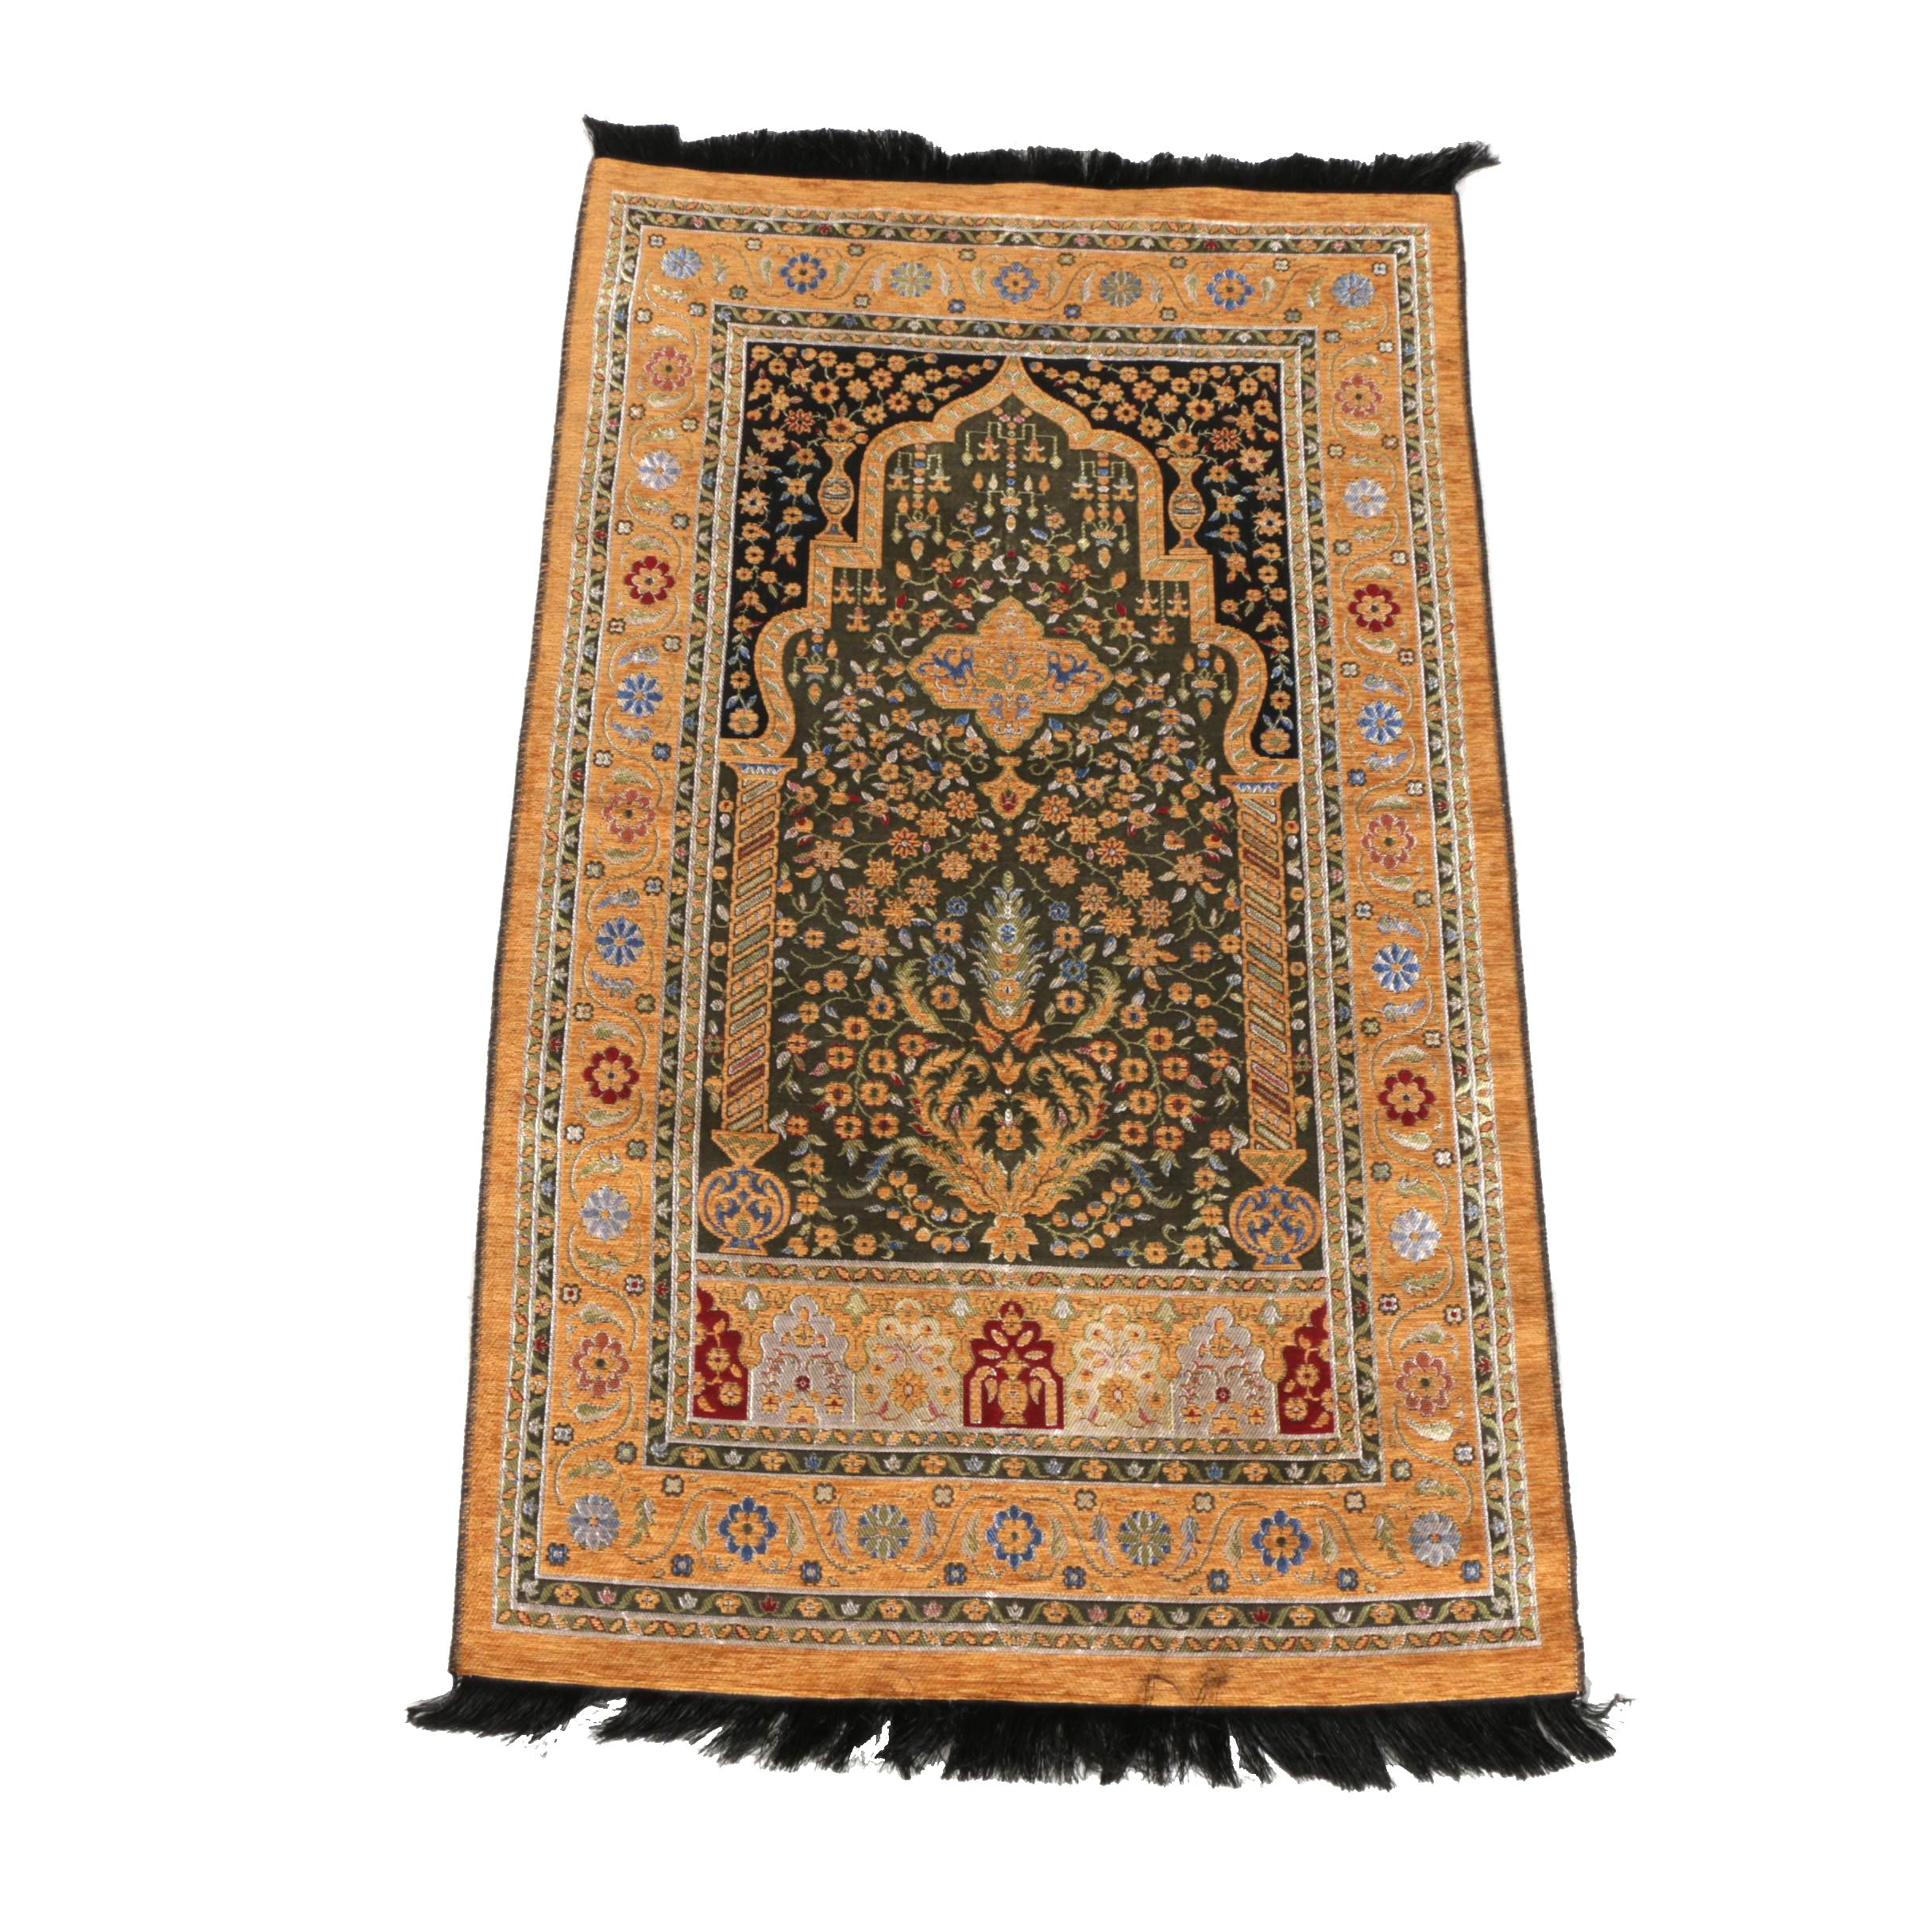 Hand-Knotted Persian Prayer Rug